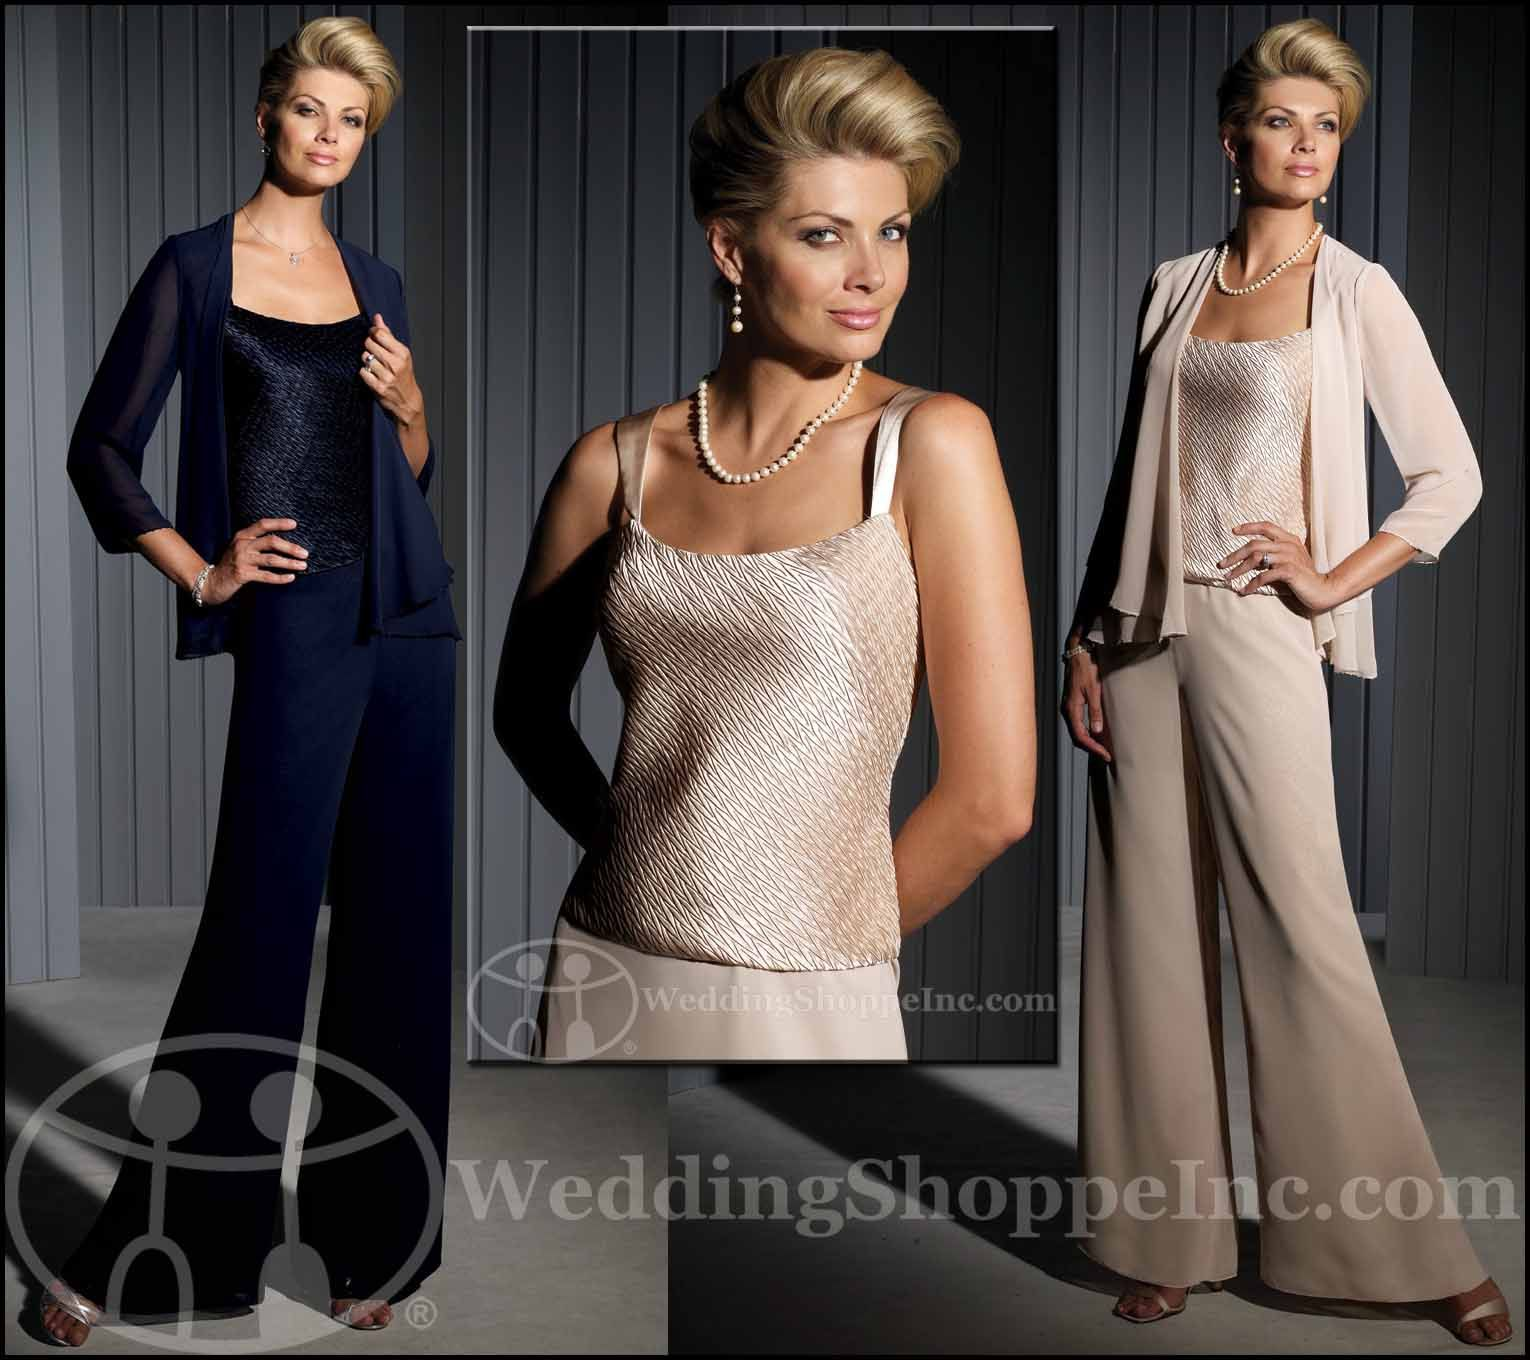 Cameron Blake 111673: Mother Of The Bride Pant Suits And Dresses You'll Love